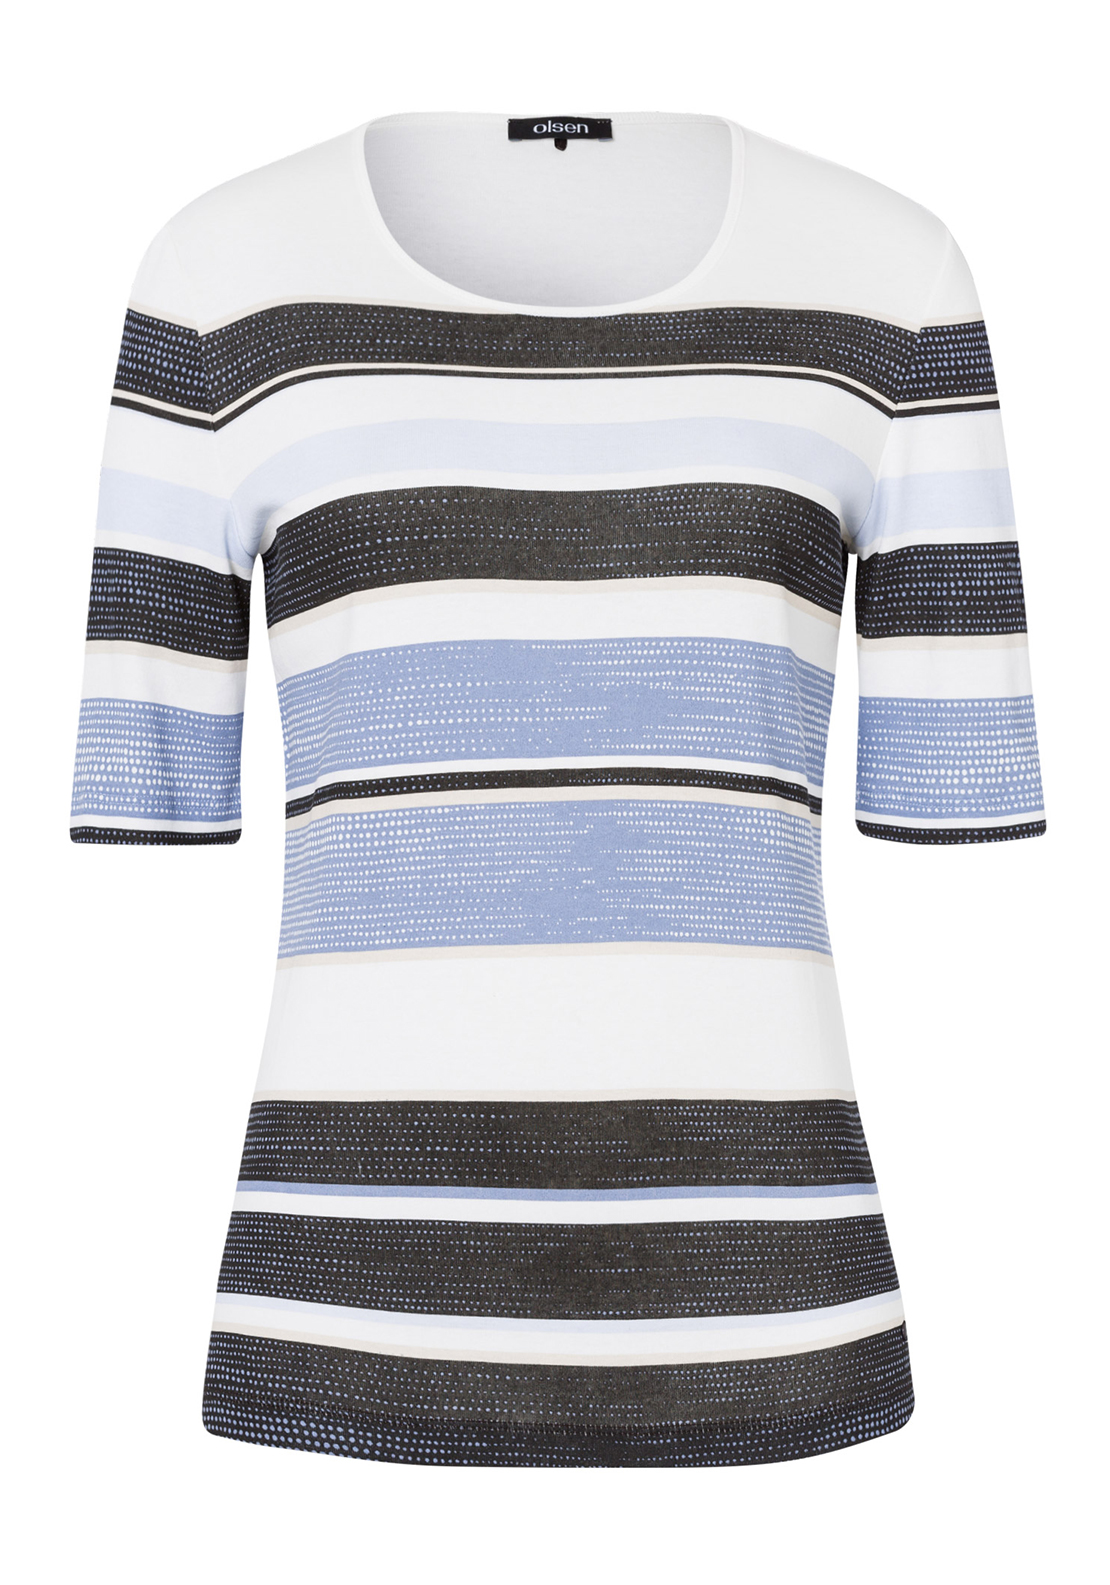 Olsen Striped Short Sleeve T-Shirt, Blue Multi